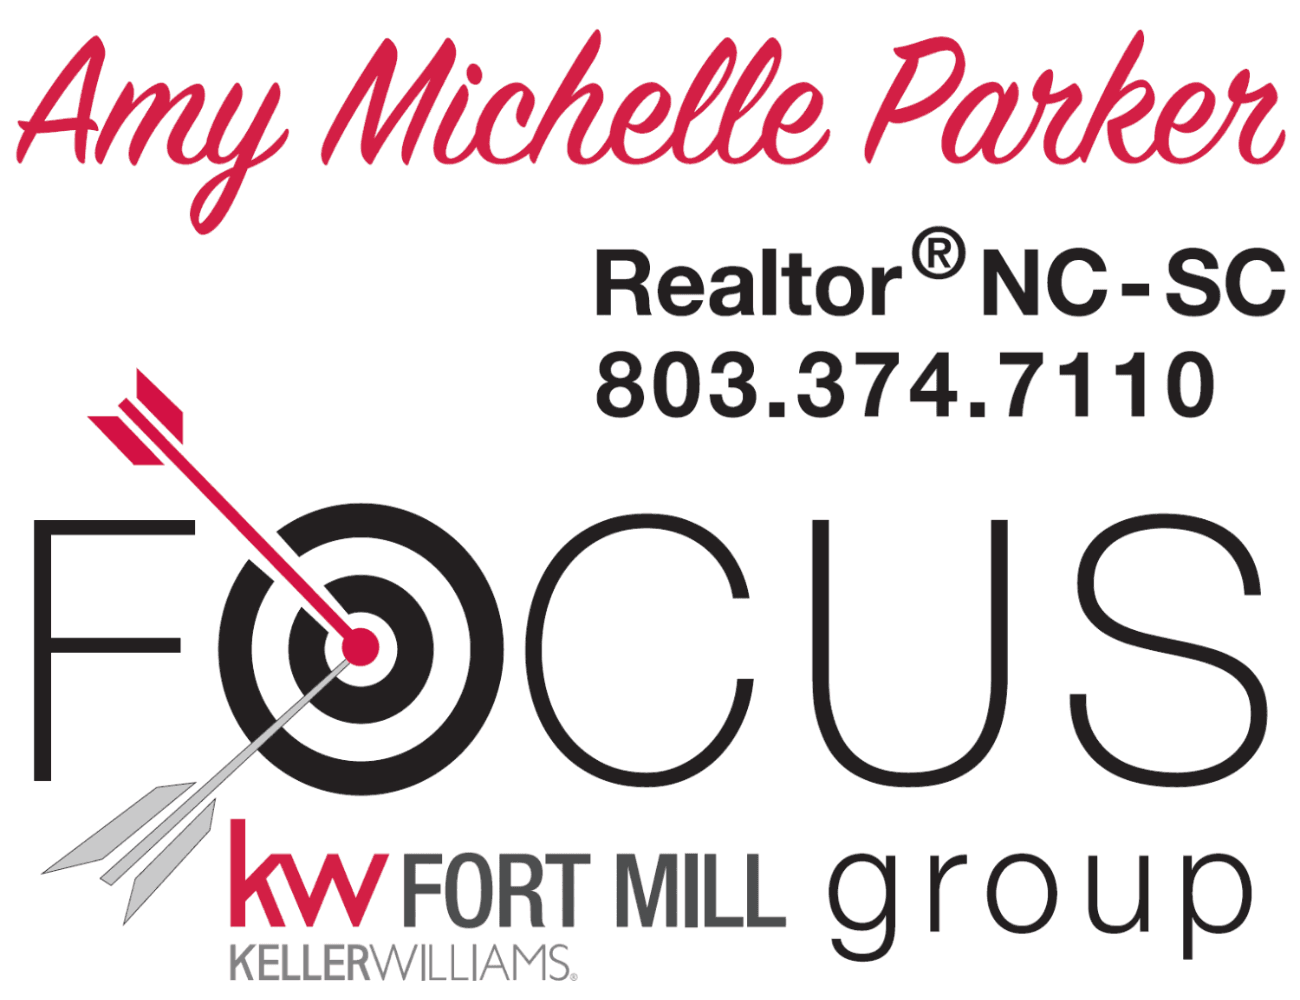 Amy Michelle Parker Realtor